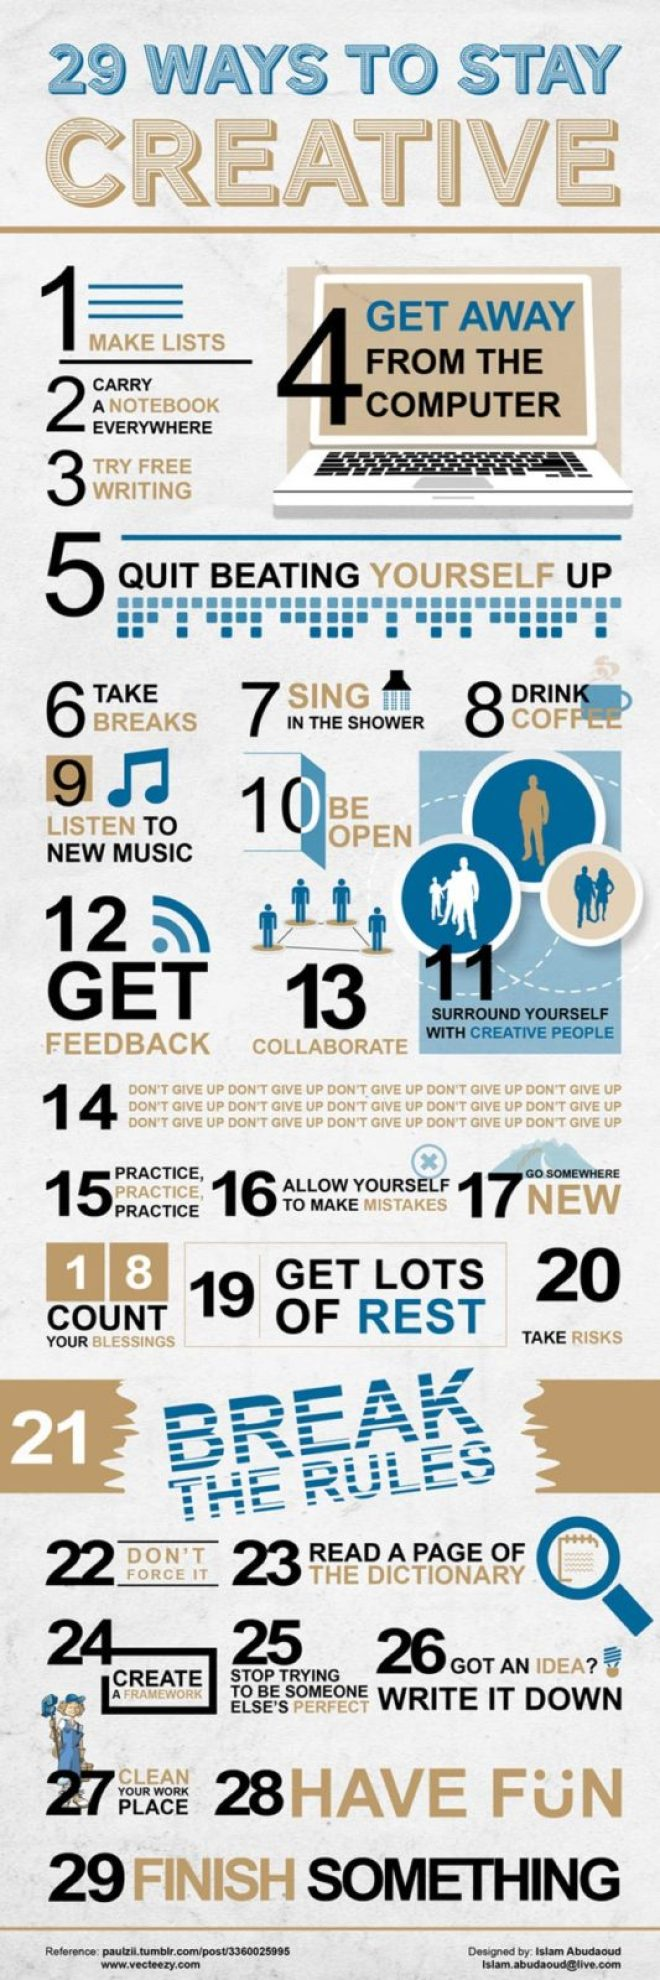 ways-to-stay-creative-infographic